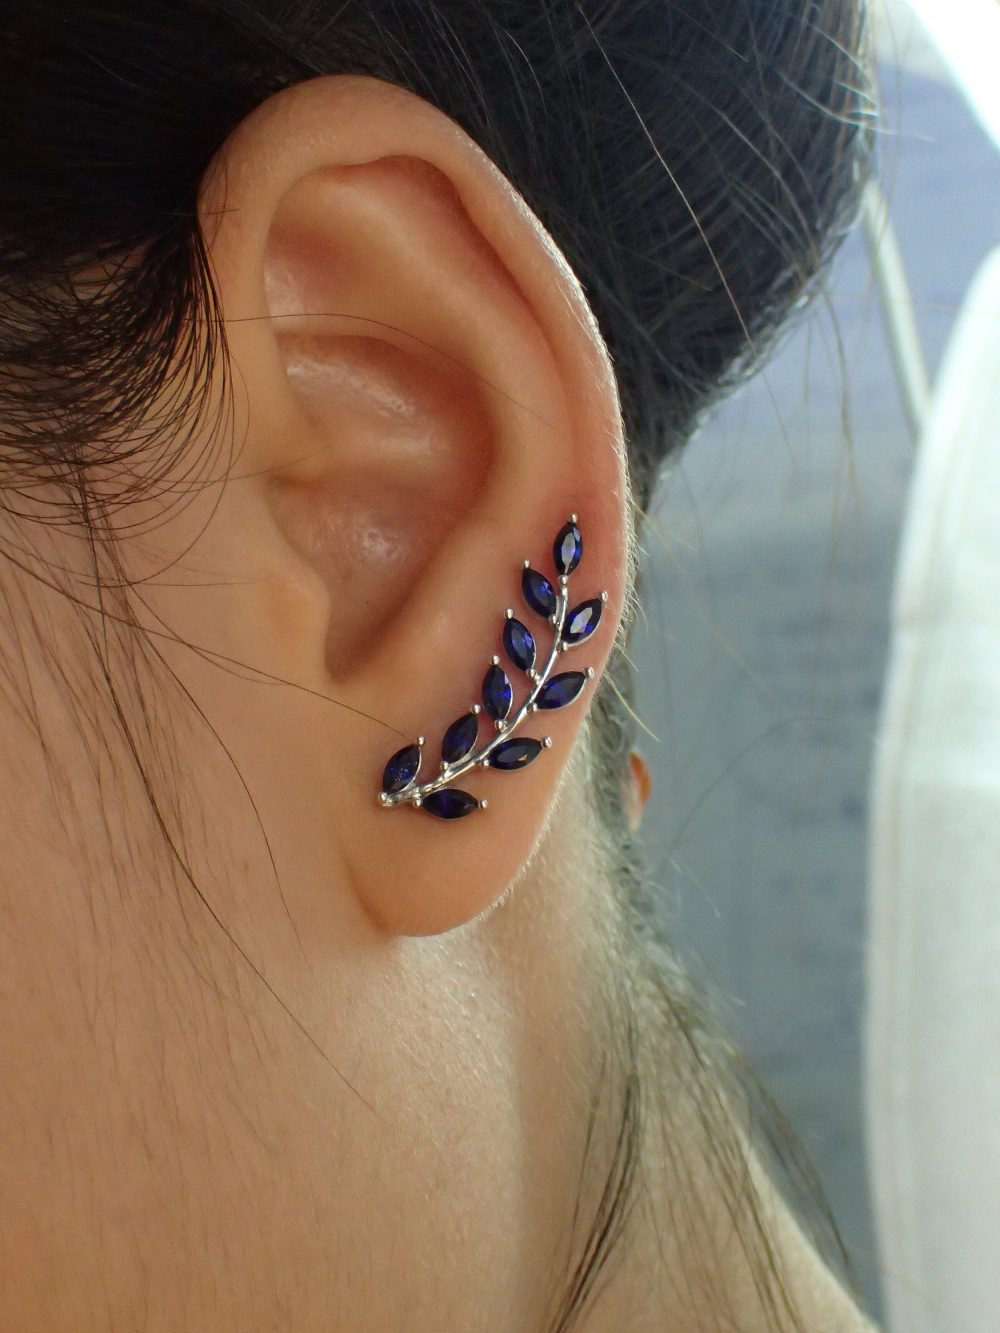 Blue Sapphire Earring Climber/Marquise Ear Crawlers Earrings Bridesmaid Gift Minimalist